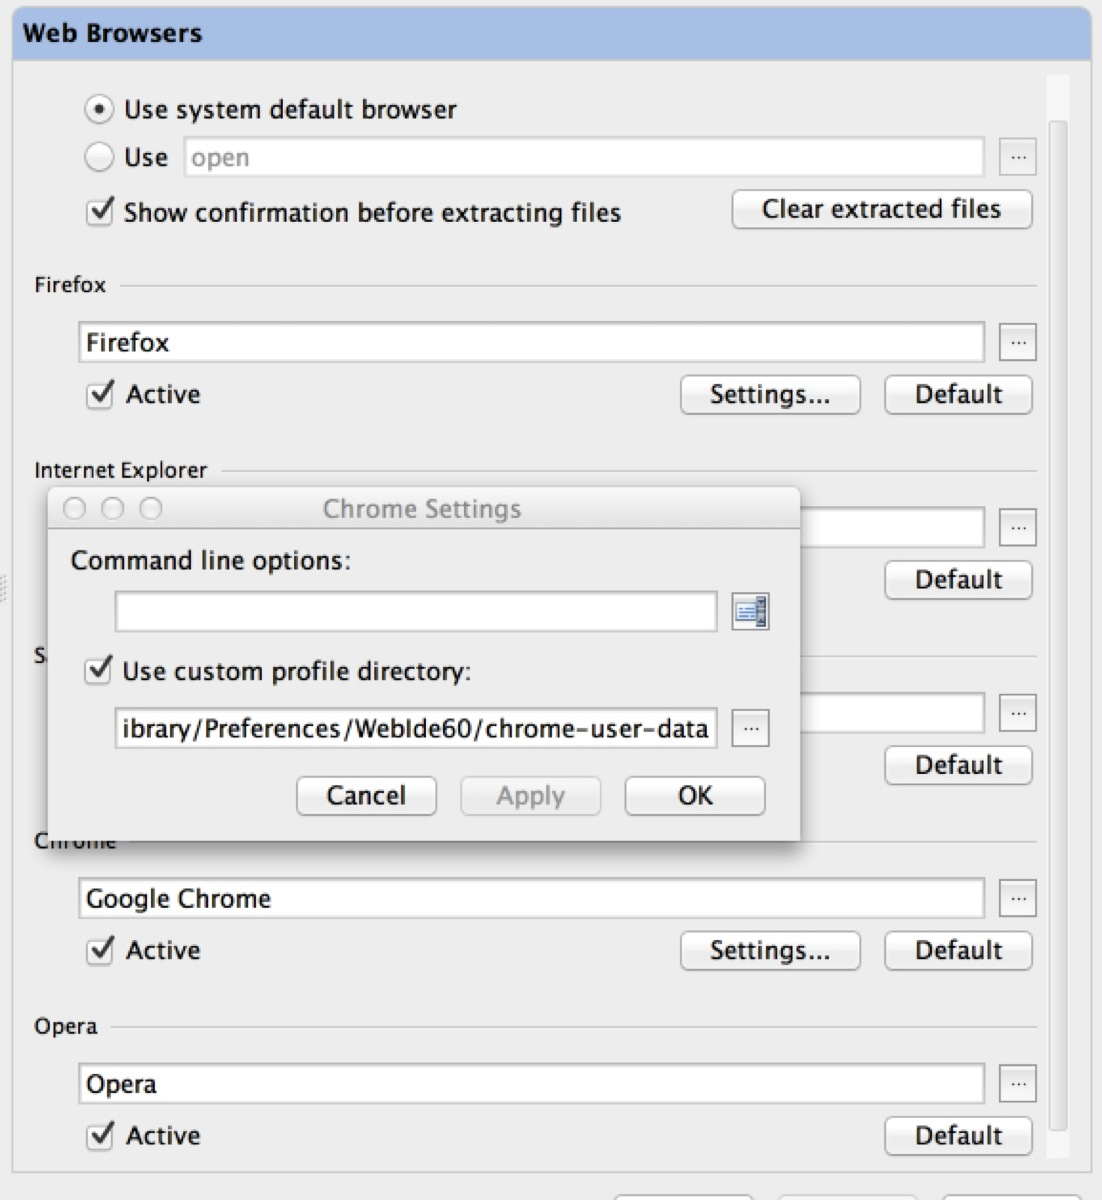 Chrome Settings 2013 02 20 23 35 11